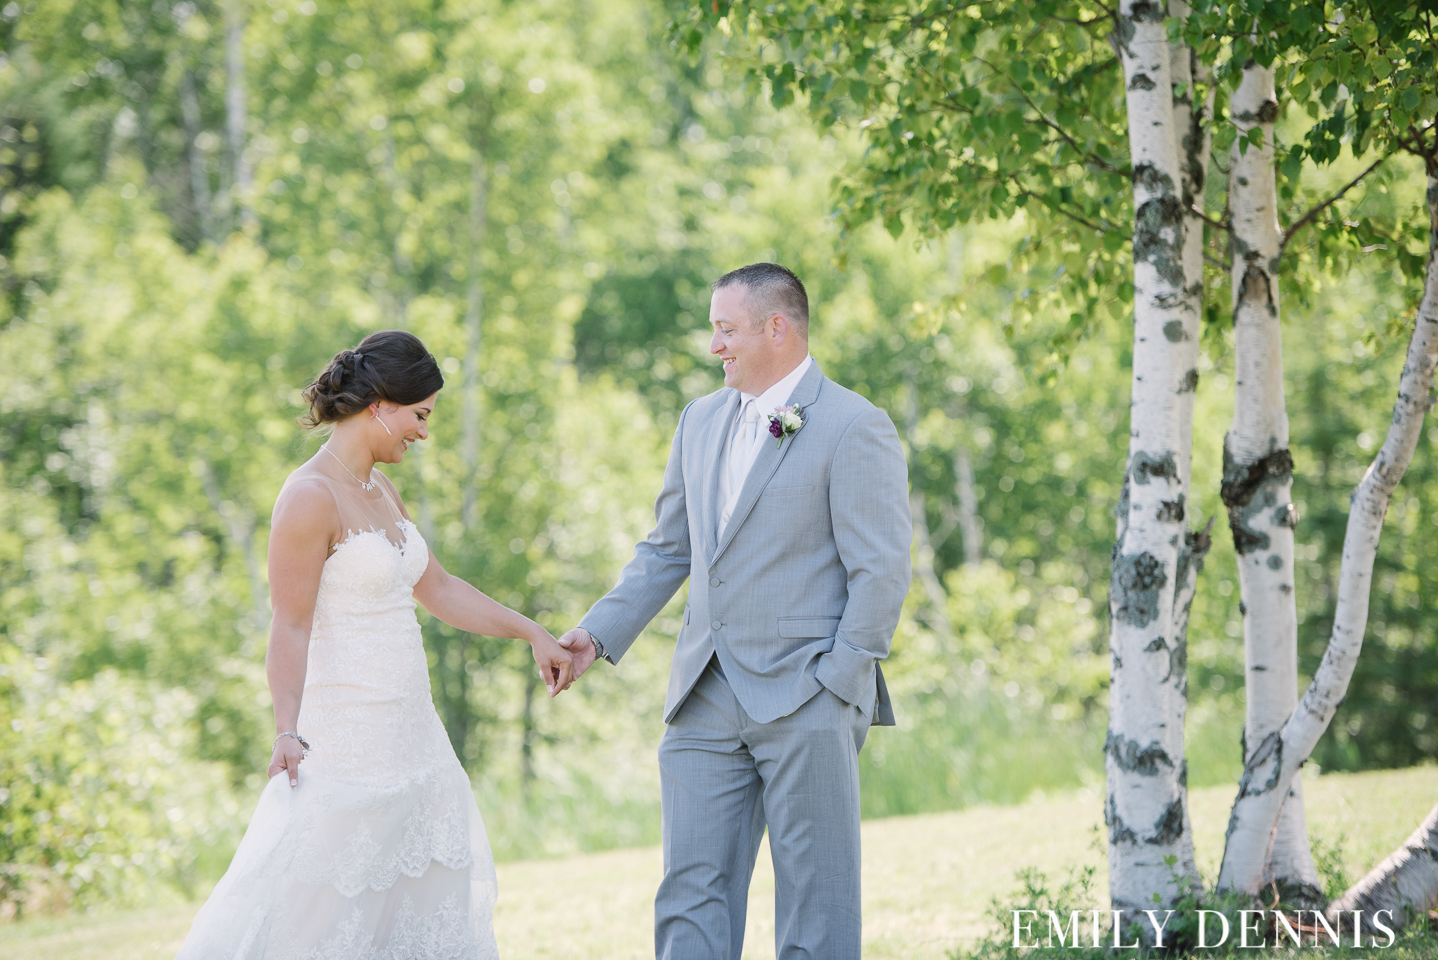 EMILY_DENNIS_PHOTOGRAPHY-33